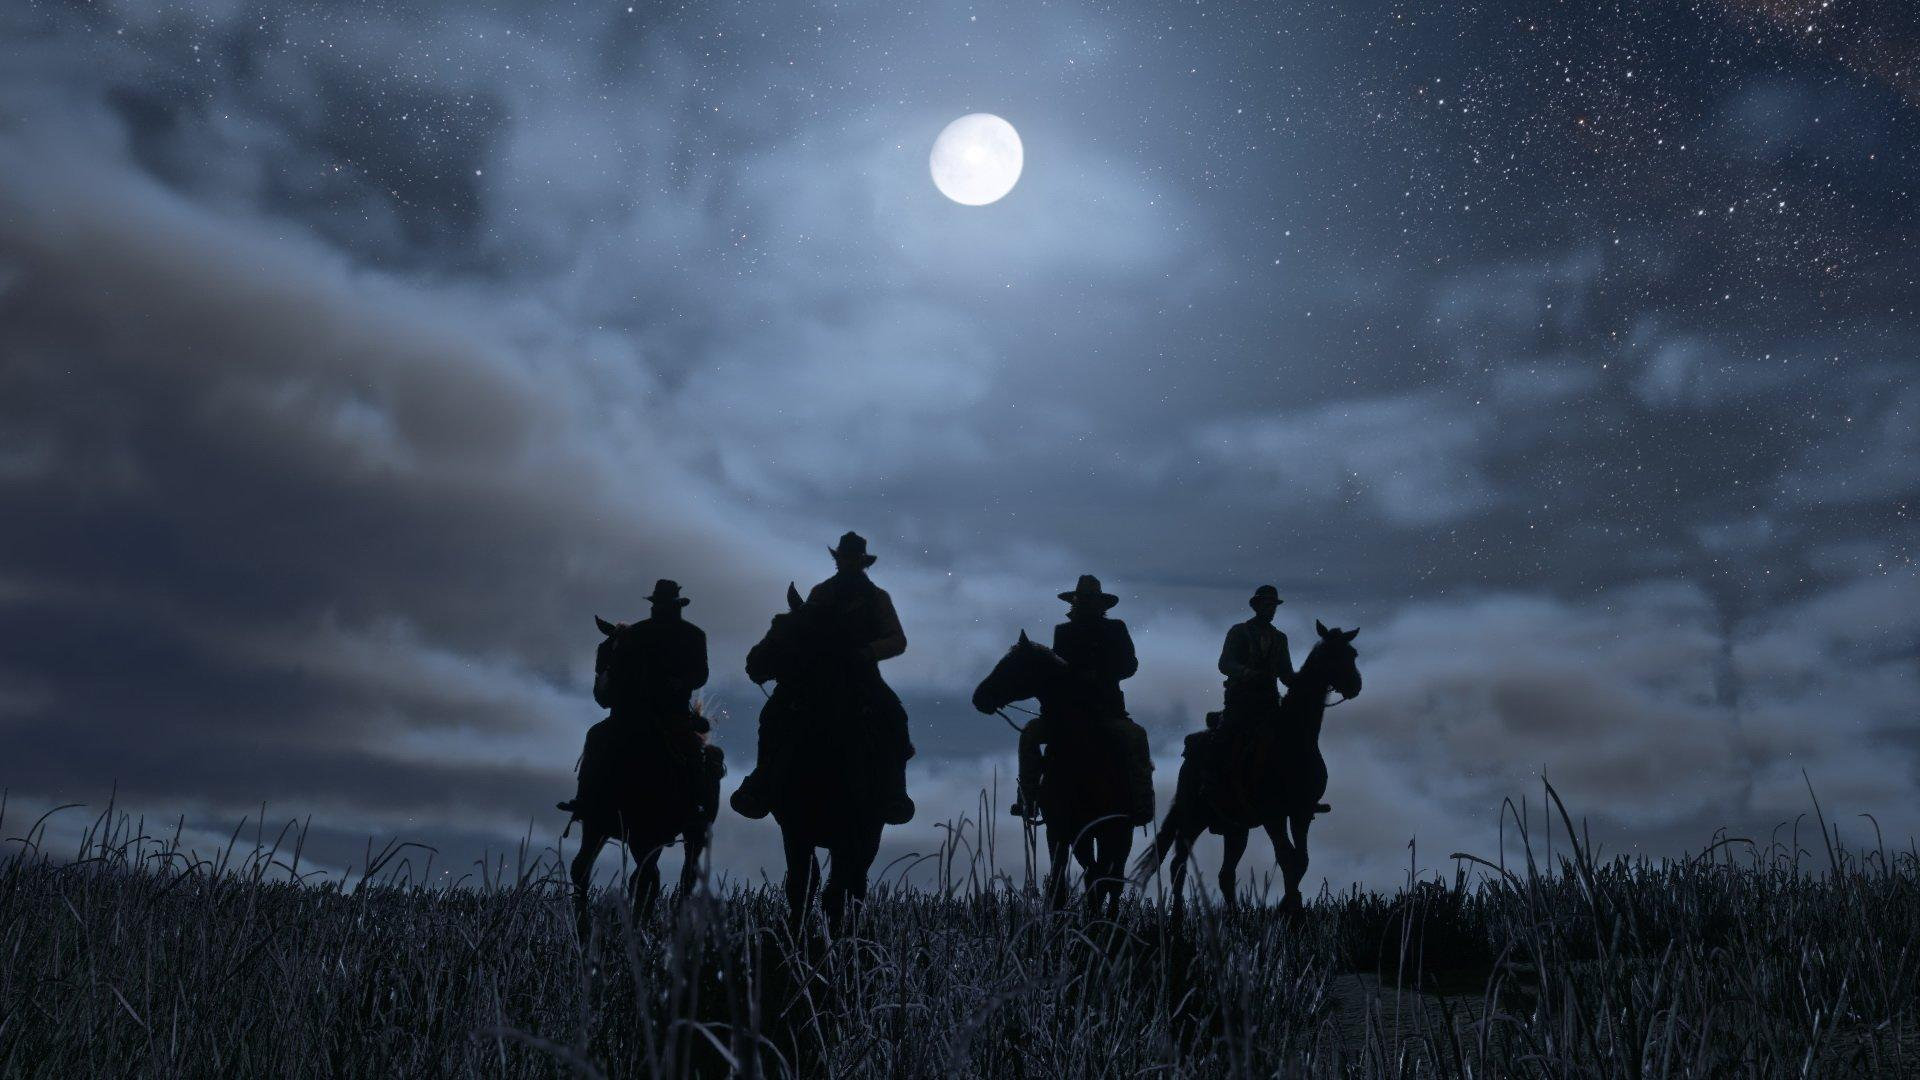 Top 11 Red Dead Redemption 2 Wallpapers In 4k And Full Hd